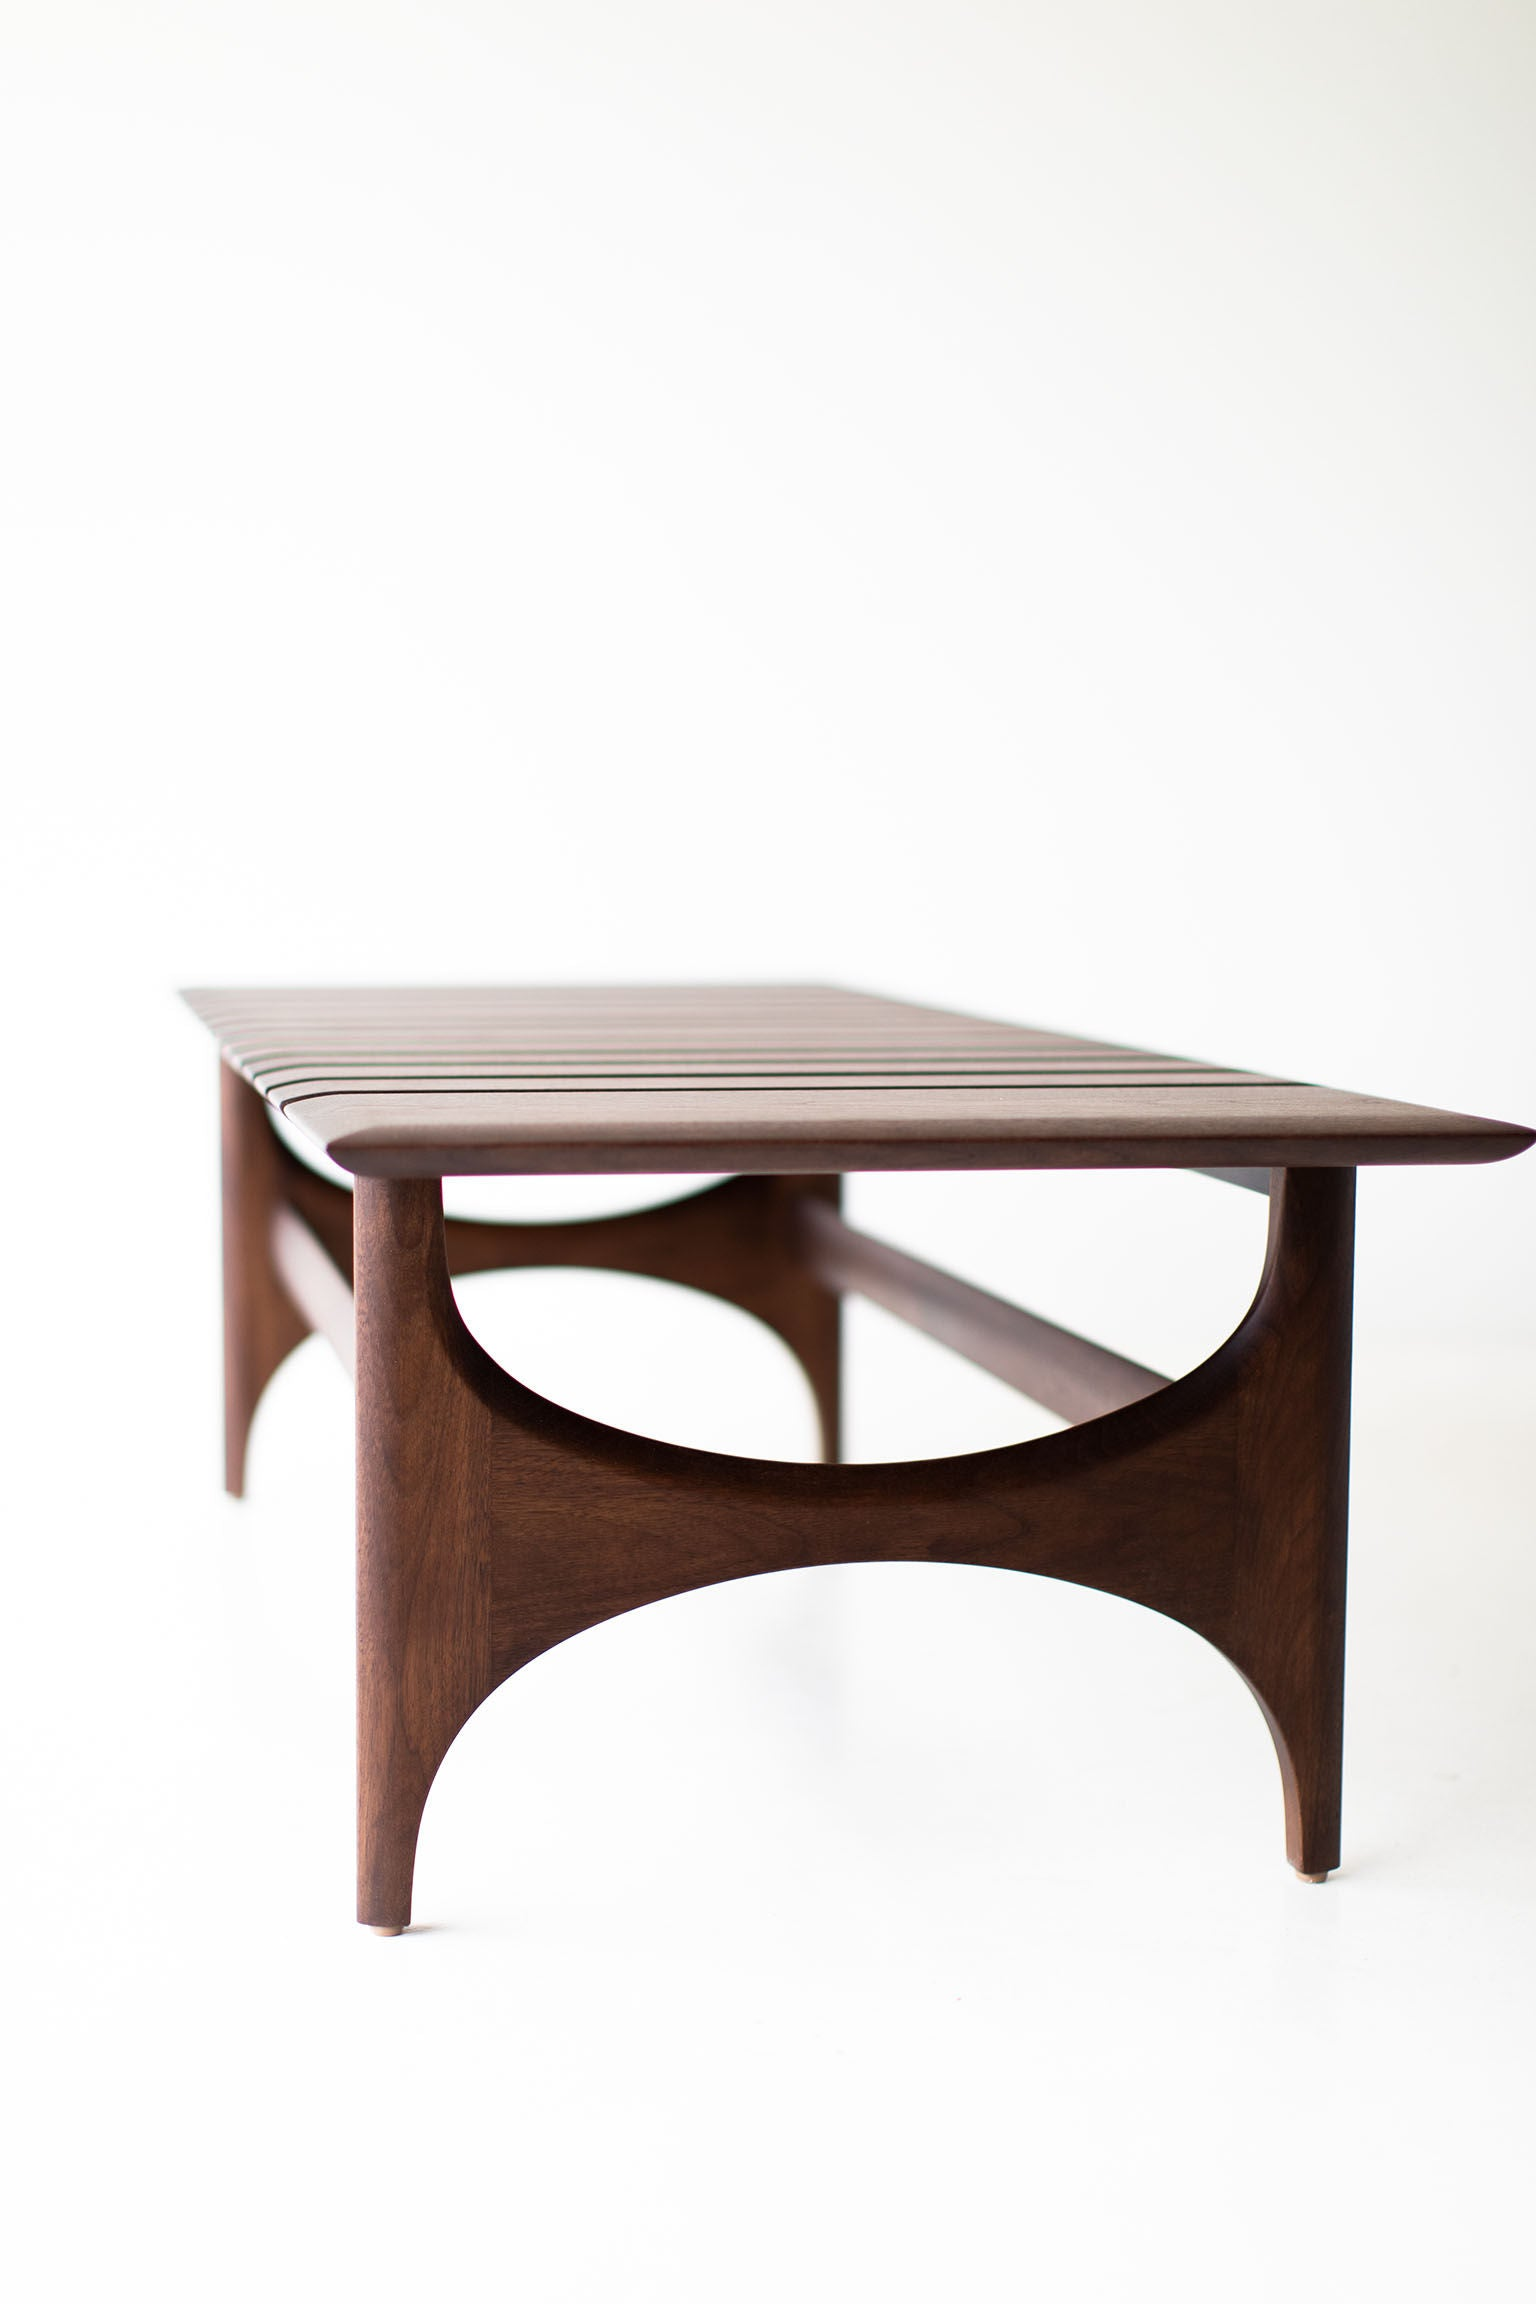 modern-bench-craft-associates-furniture-01